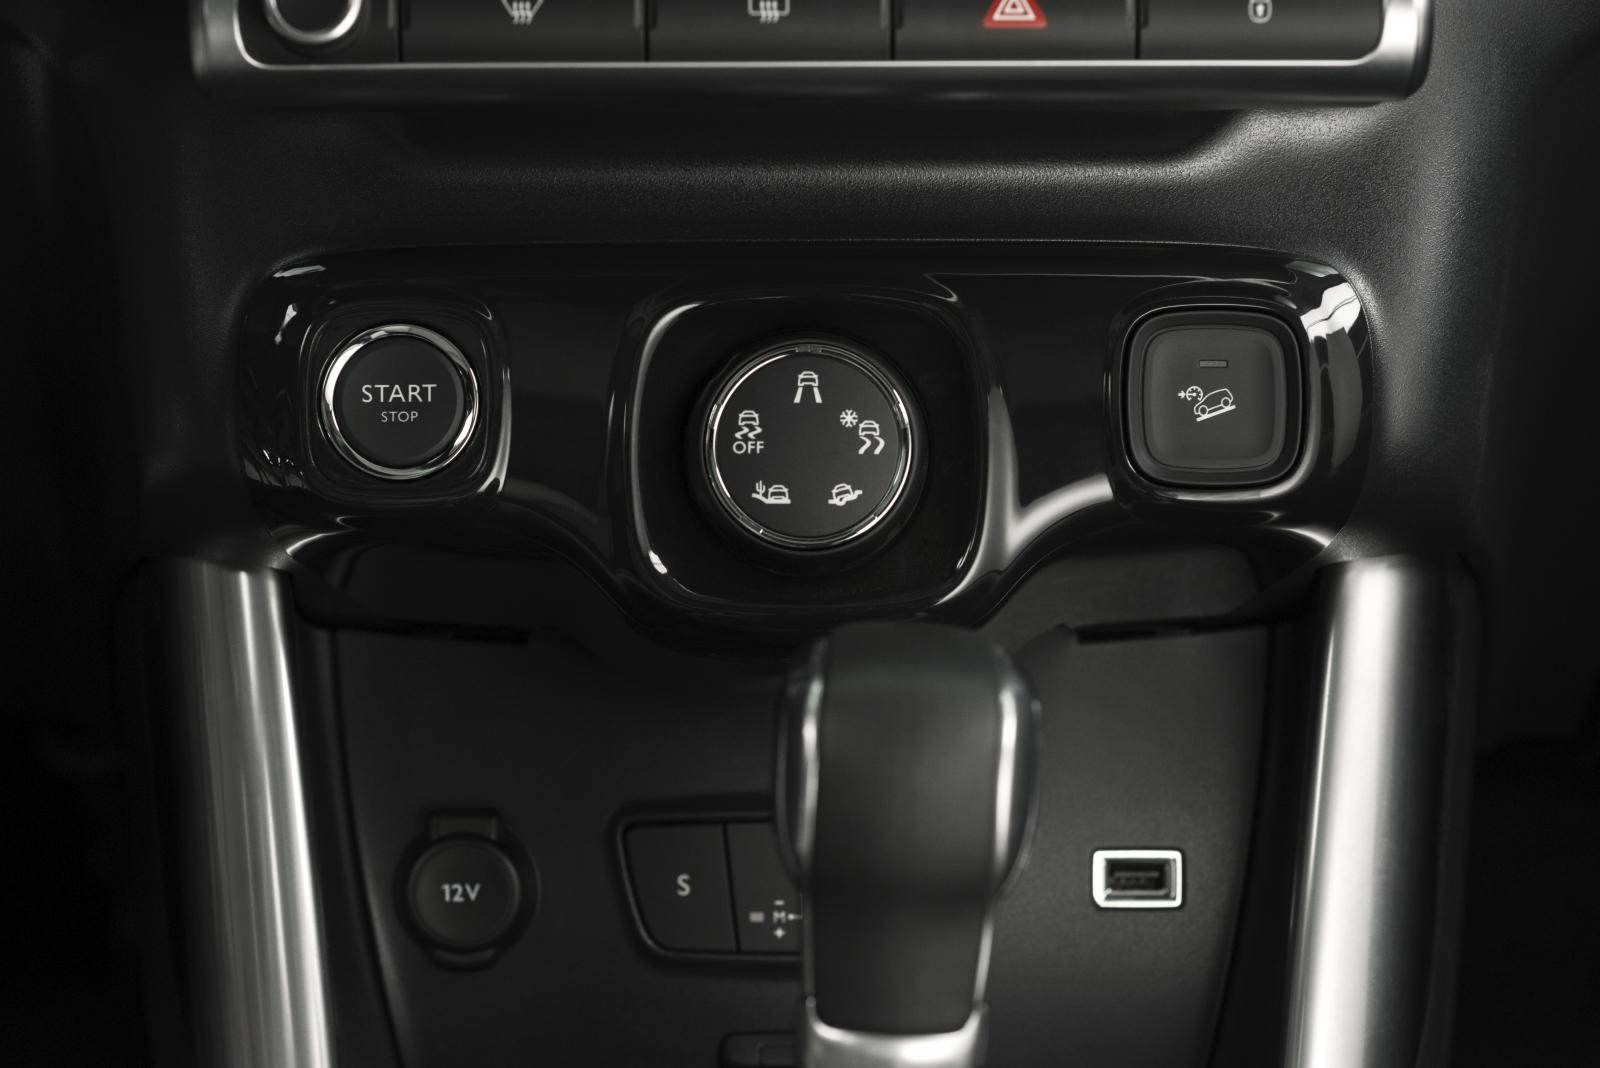 SUV Compact C3 Aircross – Grip Control